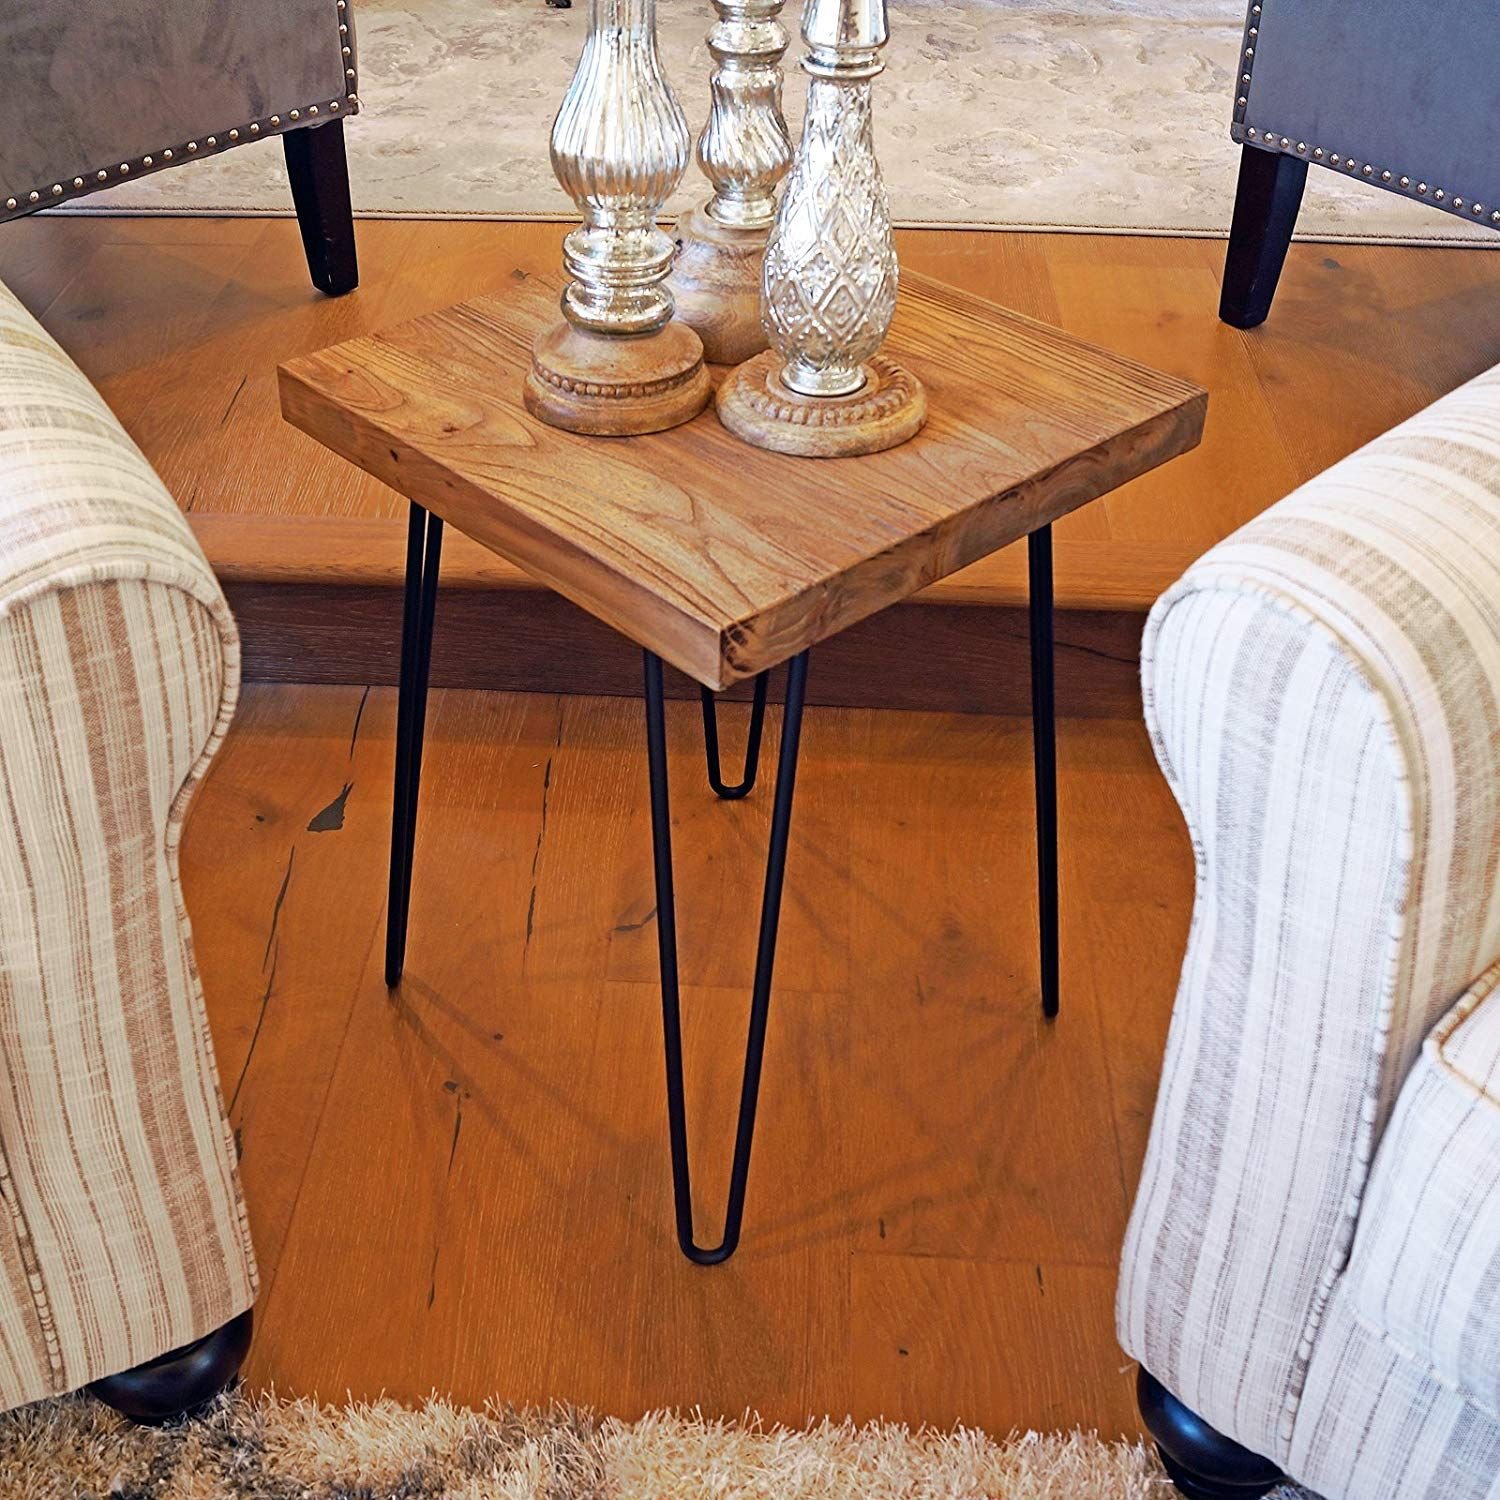 Amazon Com Welland Square Old Elm Wood End Table Rustic Surface